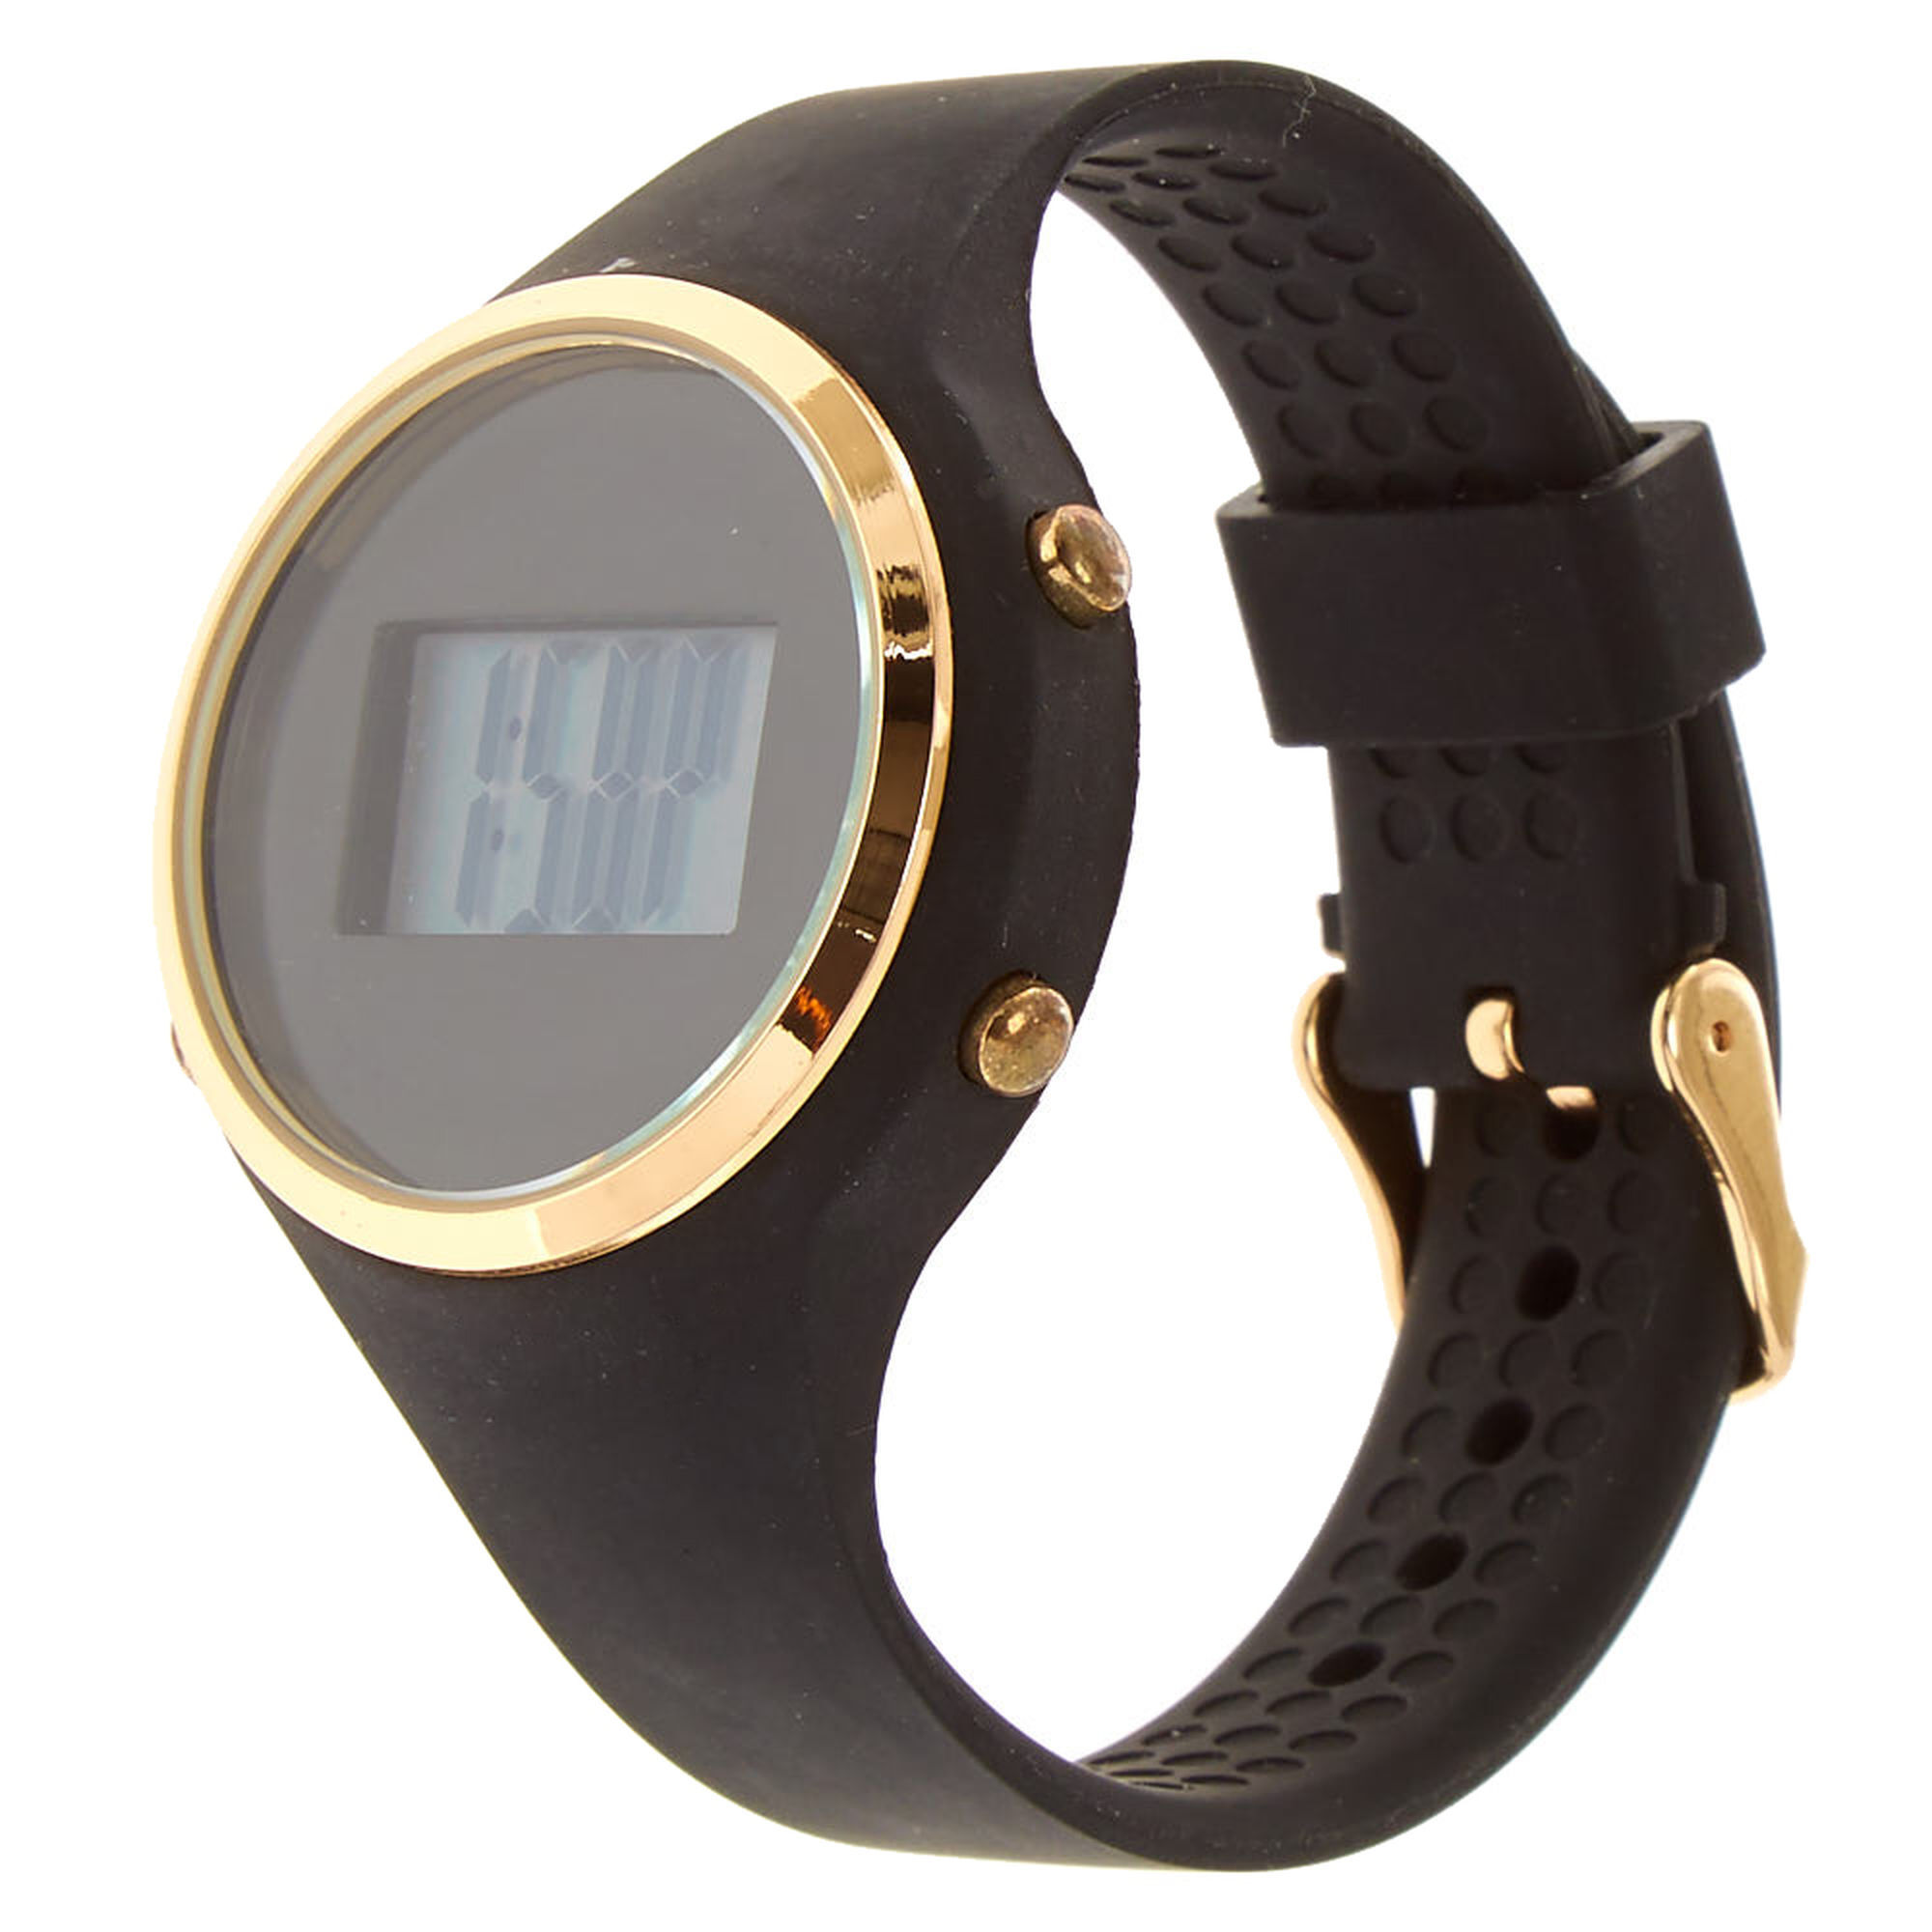 addic classy watch img silicone watches trendy through see for women analog